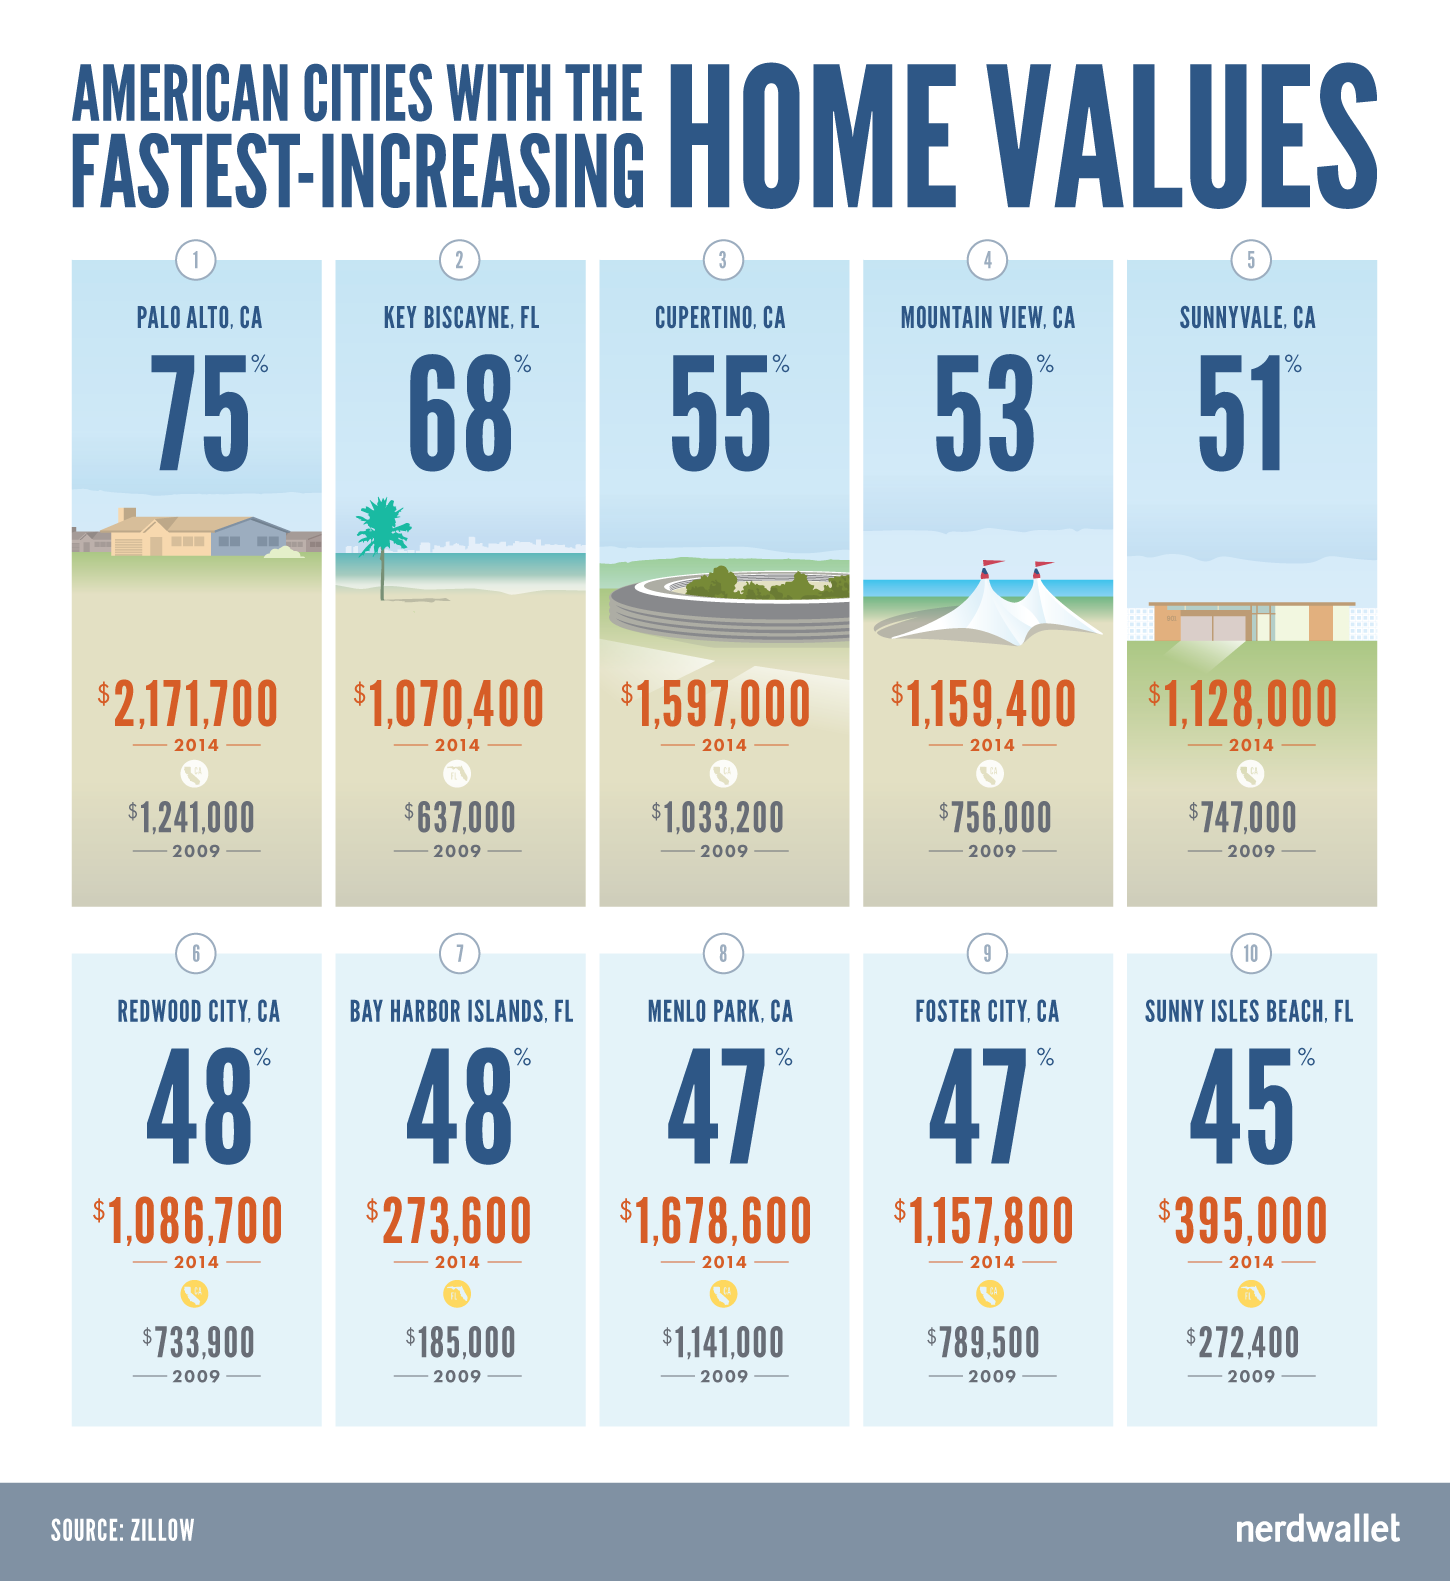 Cities With the Fastest Increasing Home Values